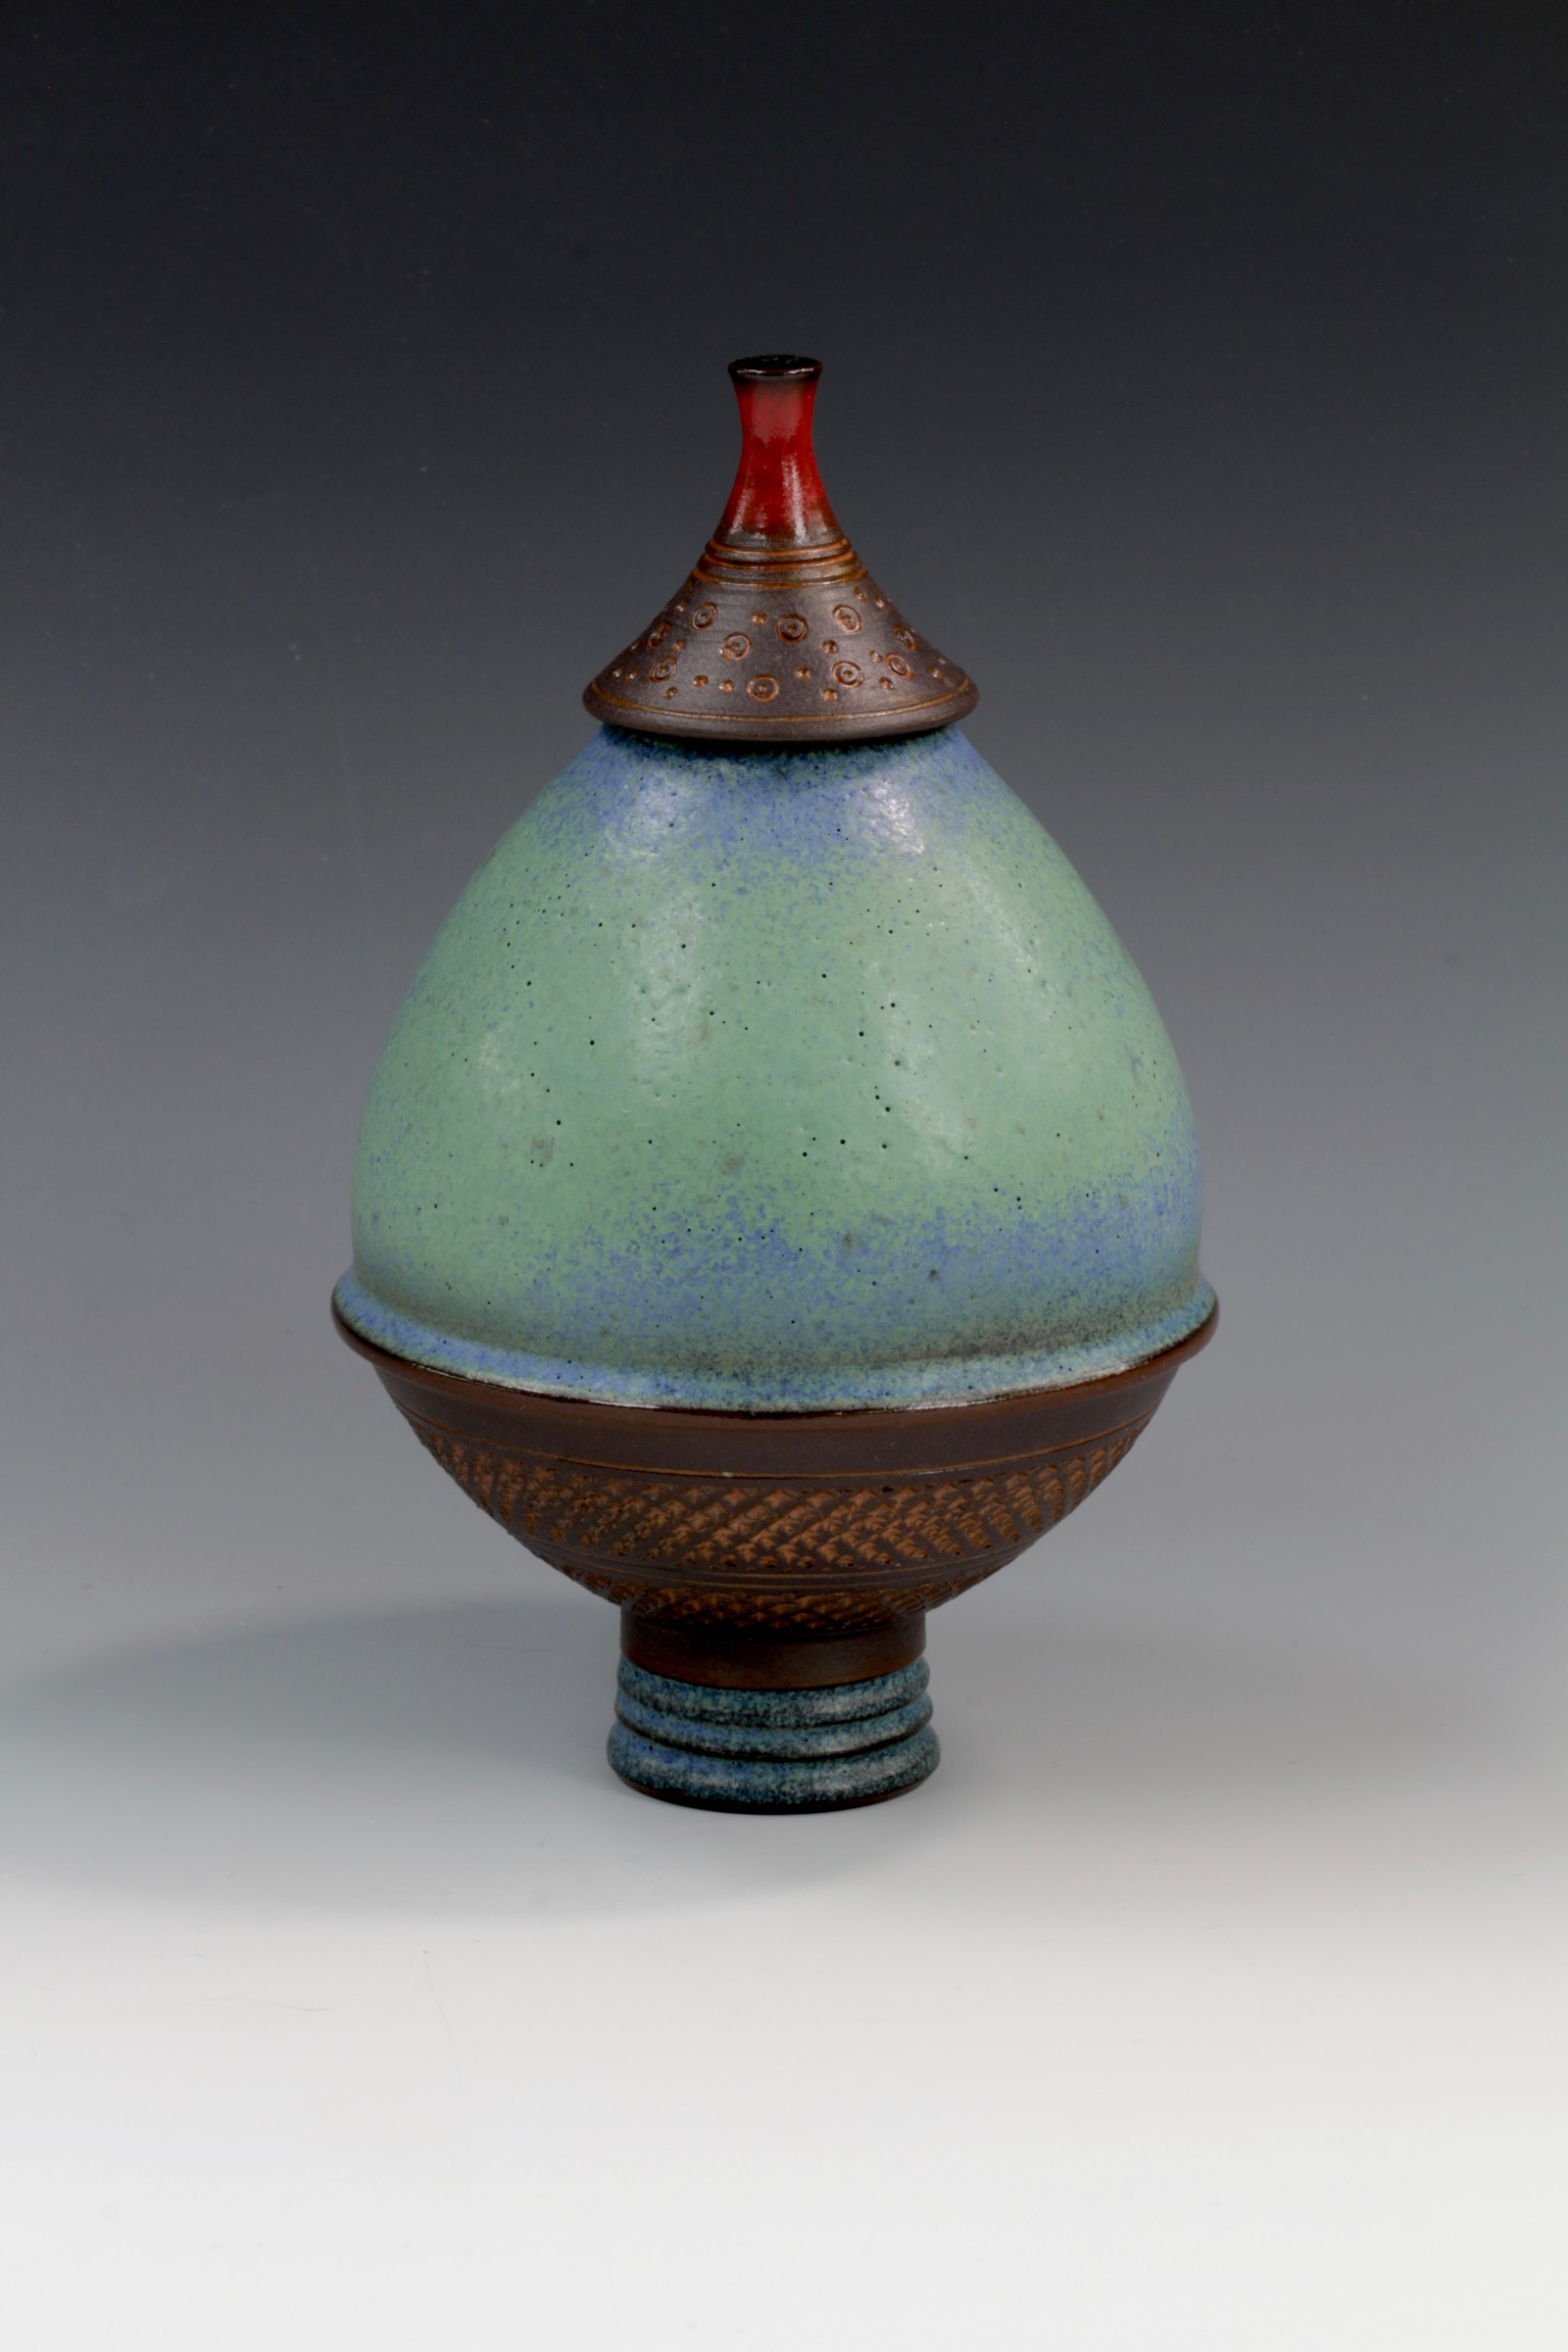 "<span class=""link fancybox-details-link""><a href=""/artists/61-geoffrey-swindell/works/6910-geoffrey-swindell-lidded-pot-2020/"">View Detail Page</a></span><div class=""artist""><strong>Geoffrey Swindell</strong></div> <div class=""title""><em>Lidded pot</em>, 2020</div> <div class=""signed_and_dated"">stamped on the bottom</div> <div class=""medium"">Porcelain</div><div class=""price"">£210.00</div><div class=""copyright_line"">Copyright The Artist</div>"